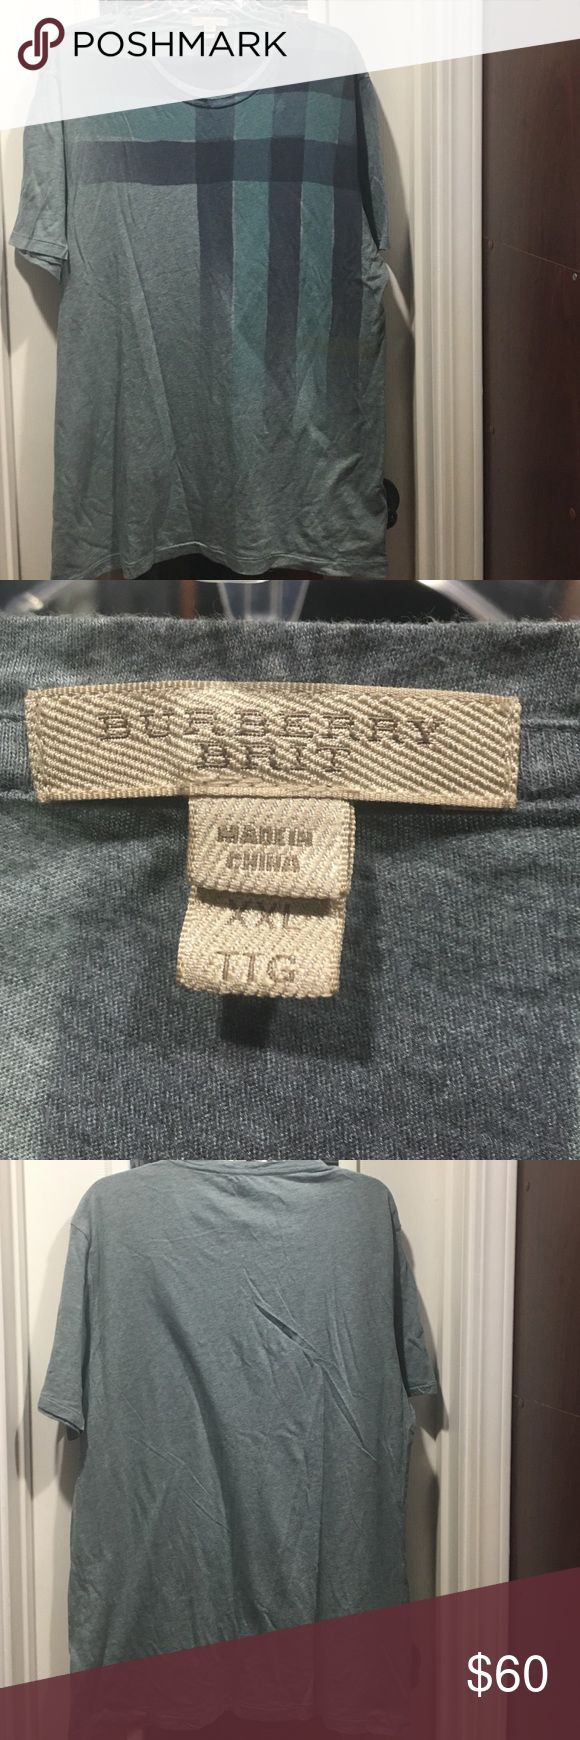 Burberry Brit t-shirt for men Burberry Brit T-shirt for men. Size XXL.  Very soft material. 100% cotton. This item is worn no tears just a small white mark on the back of the shirt at the bottom see pic. Don't know what it is. But very light and small. Burberry Shirts Tees - Short Sleeve